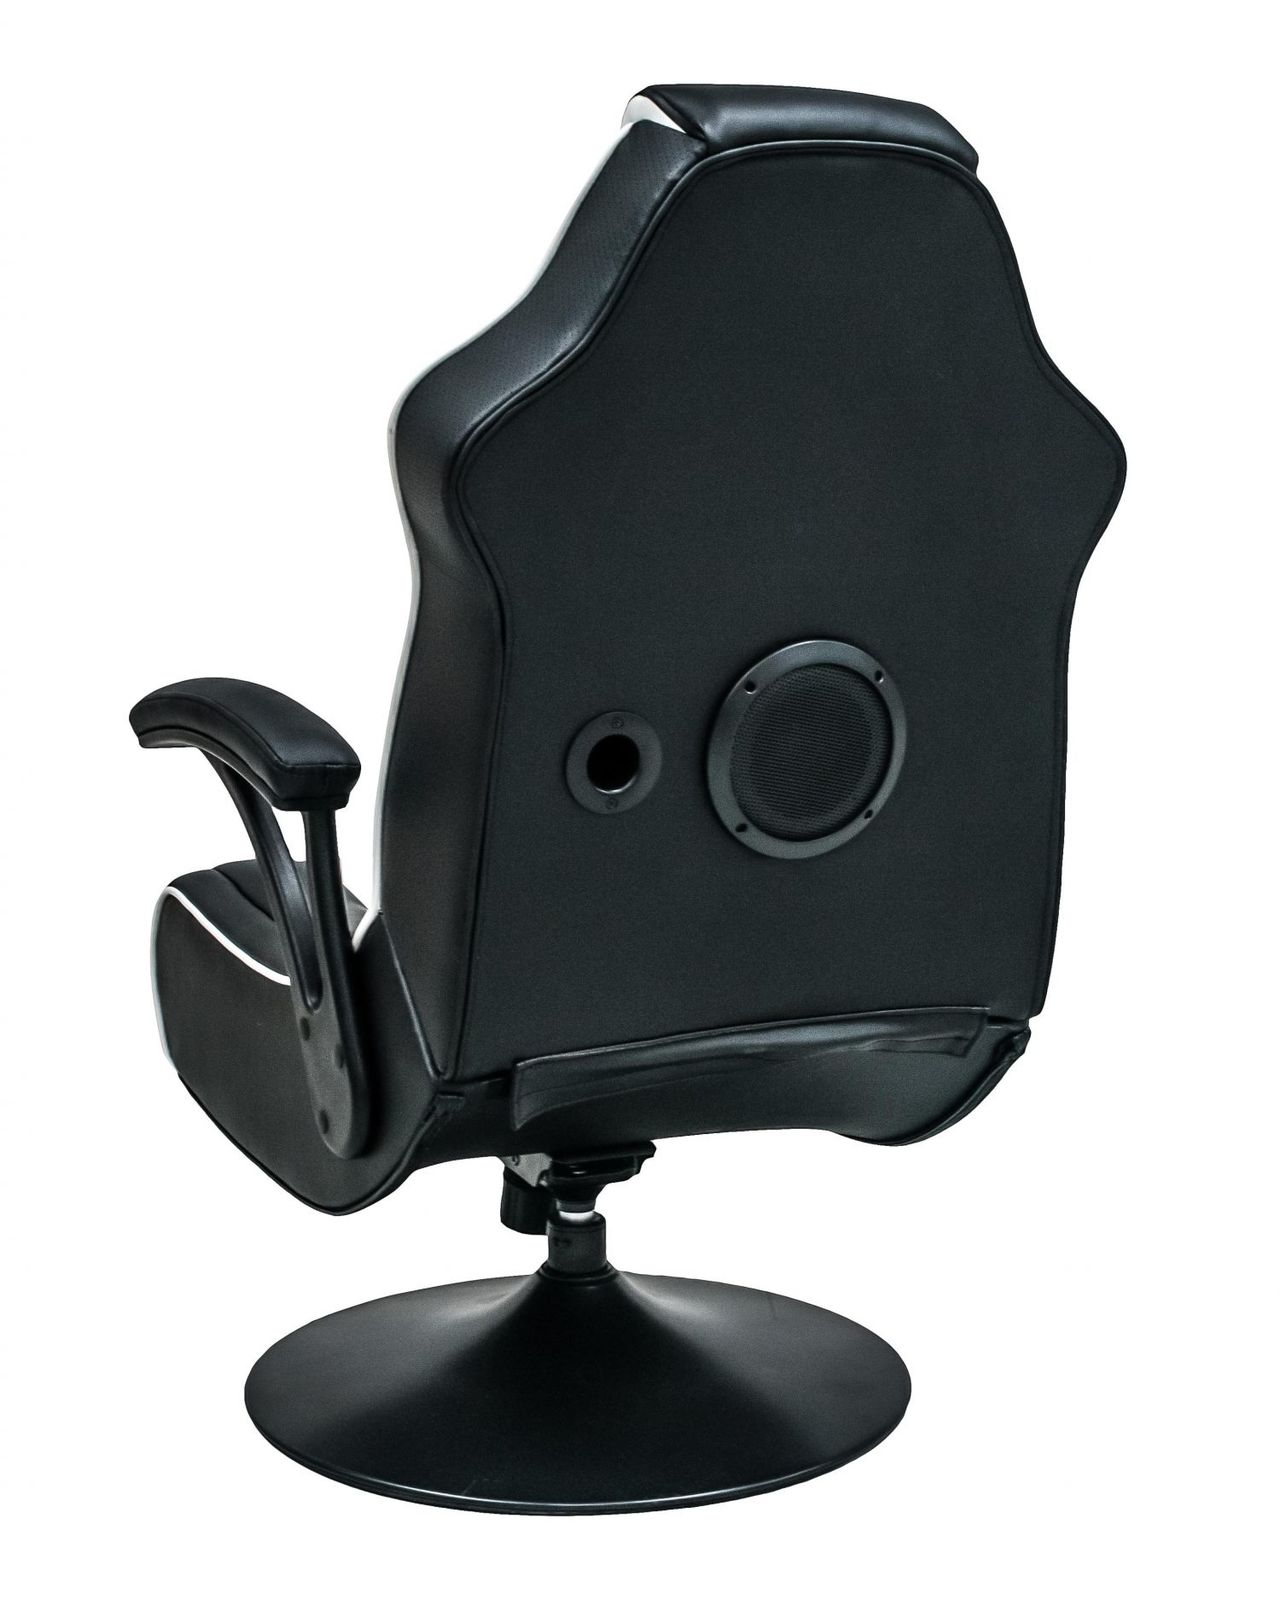 X Rocker Torque 2.1 Pedestal Gaming Chair image